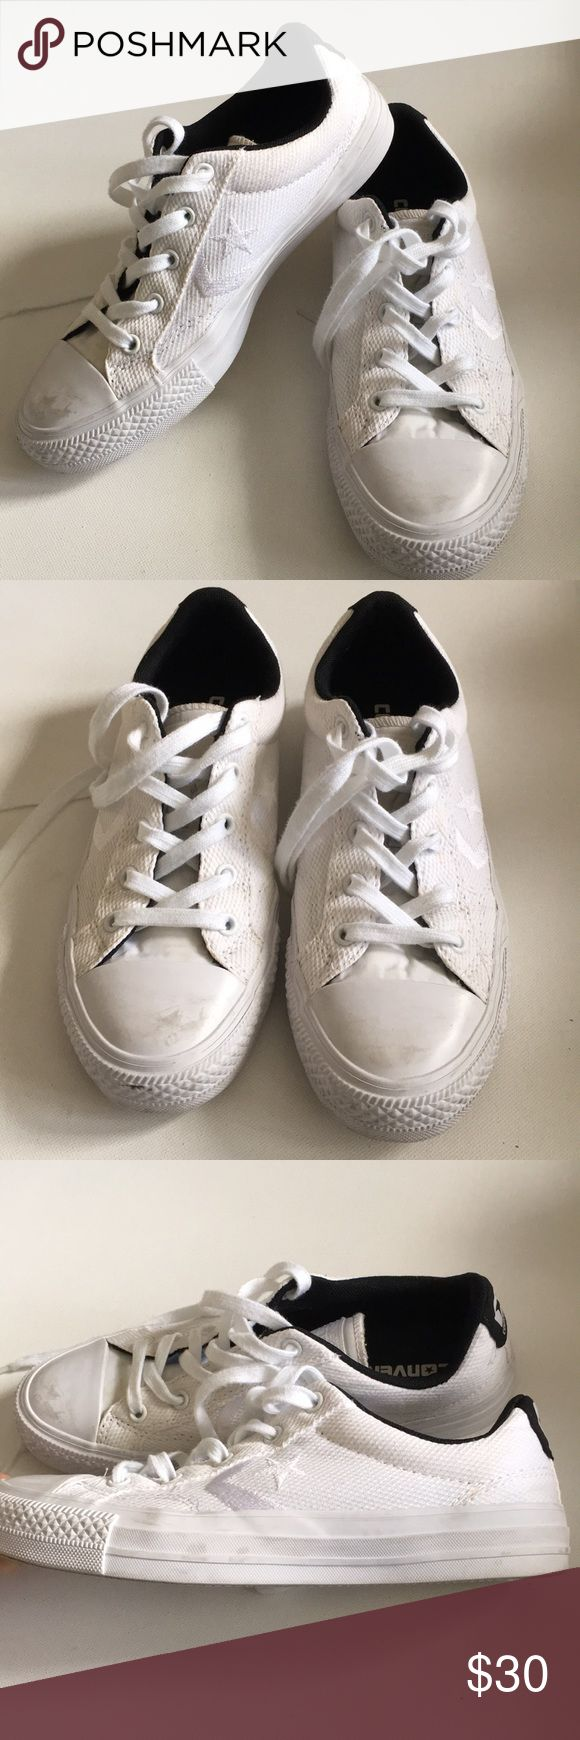 "Converse All Star Ox White sneakers Men's 4.5 6.5W Converse white sneakers style 147391C unisex shoes. Sz 4.5 Men's and labeled as 6.5 Women's but fit like a 7. Used a few times only. See ALL pictures for scuffs, markings, and signs of wear. Outsole measures 10.25"" inches from toe to heel. Converse Shoes Sneakers"